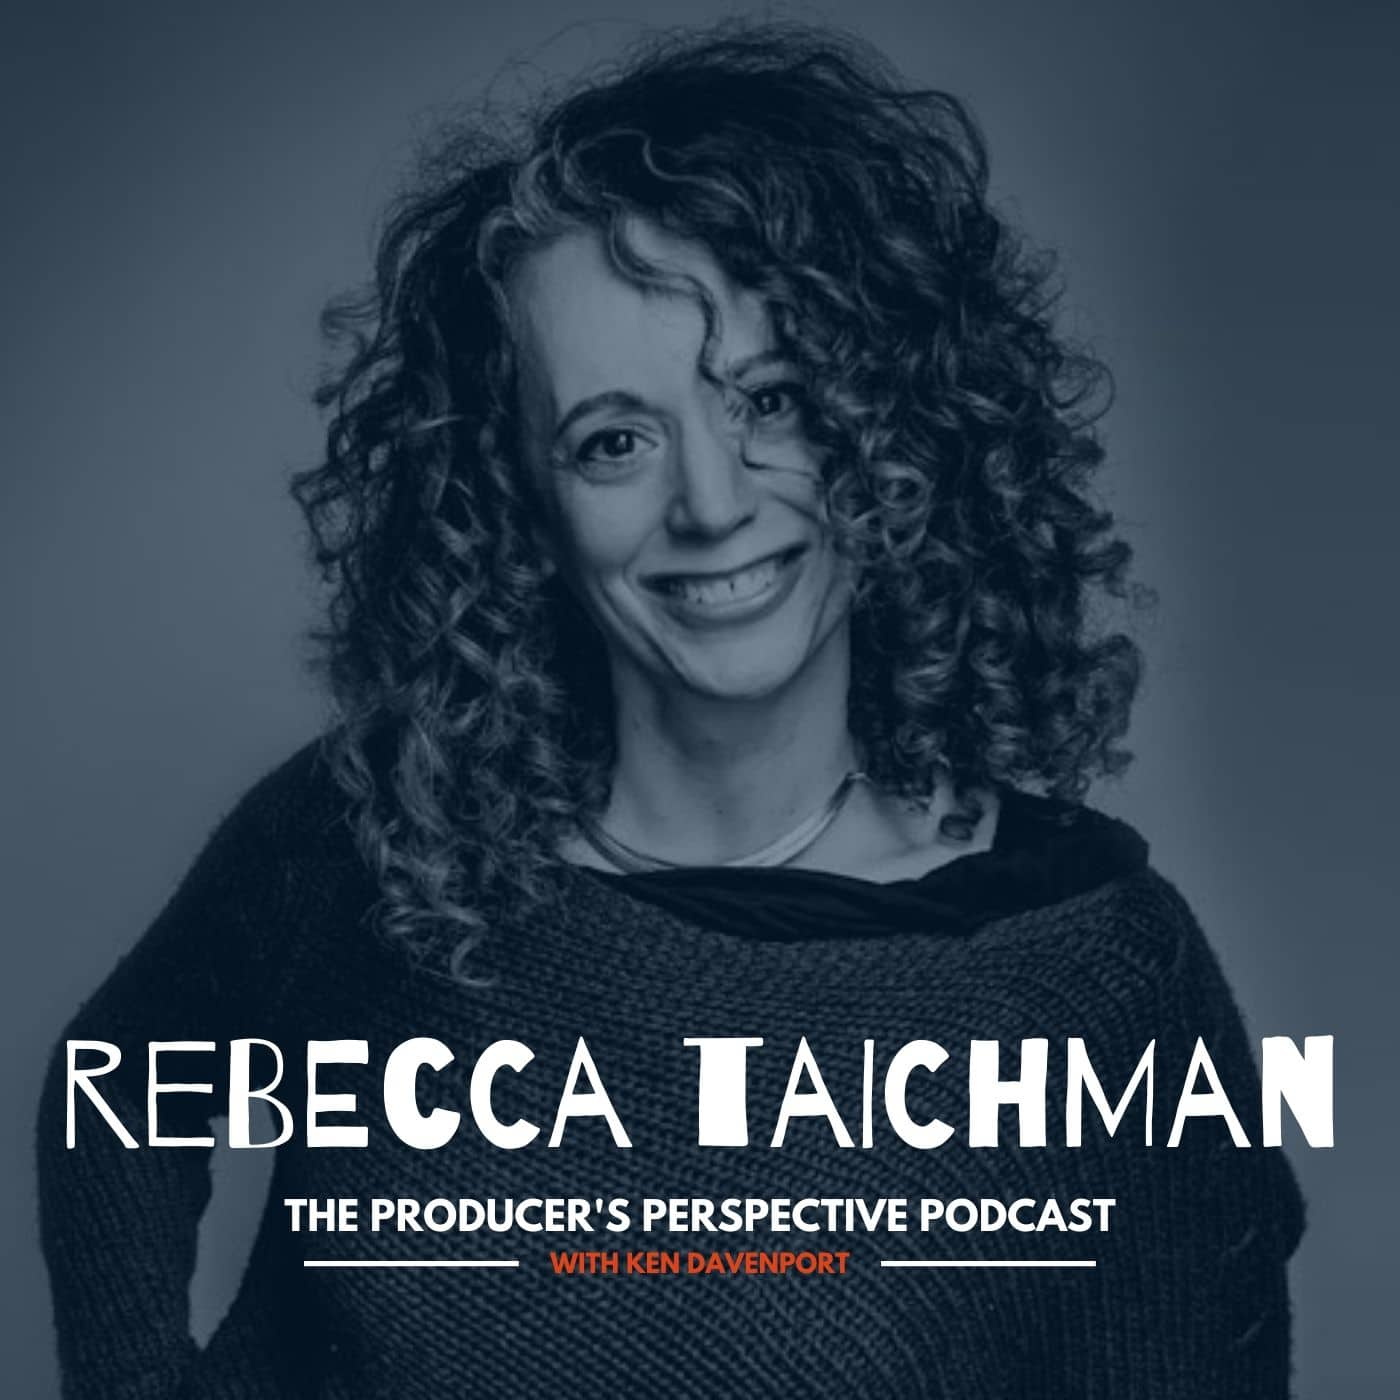 Ken Davenport's The Producer's Perspective Podcast Episode 157 - Rebecca Taichman